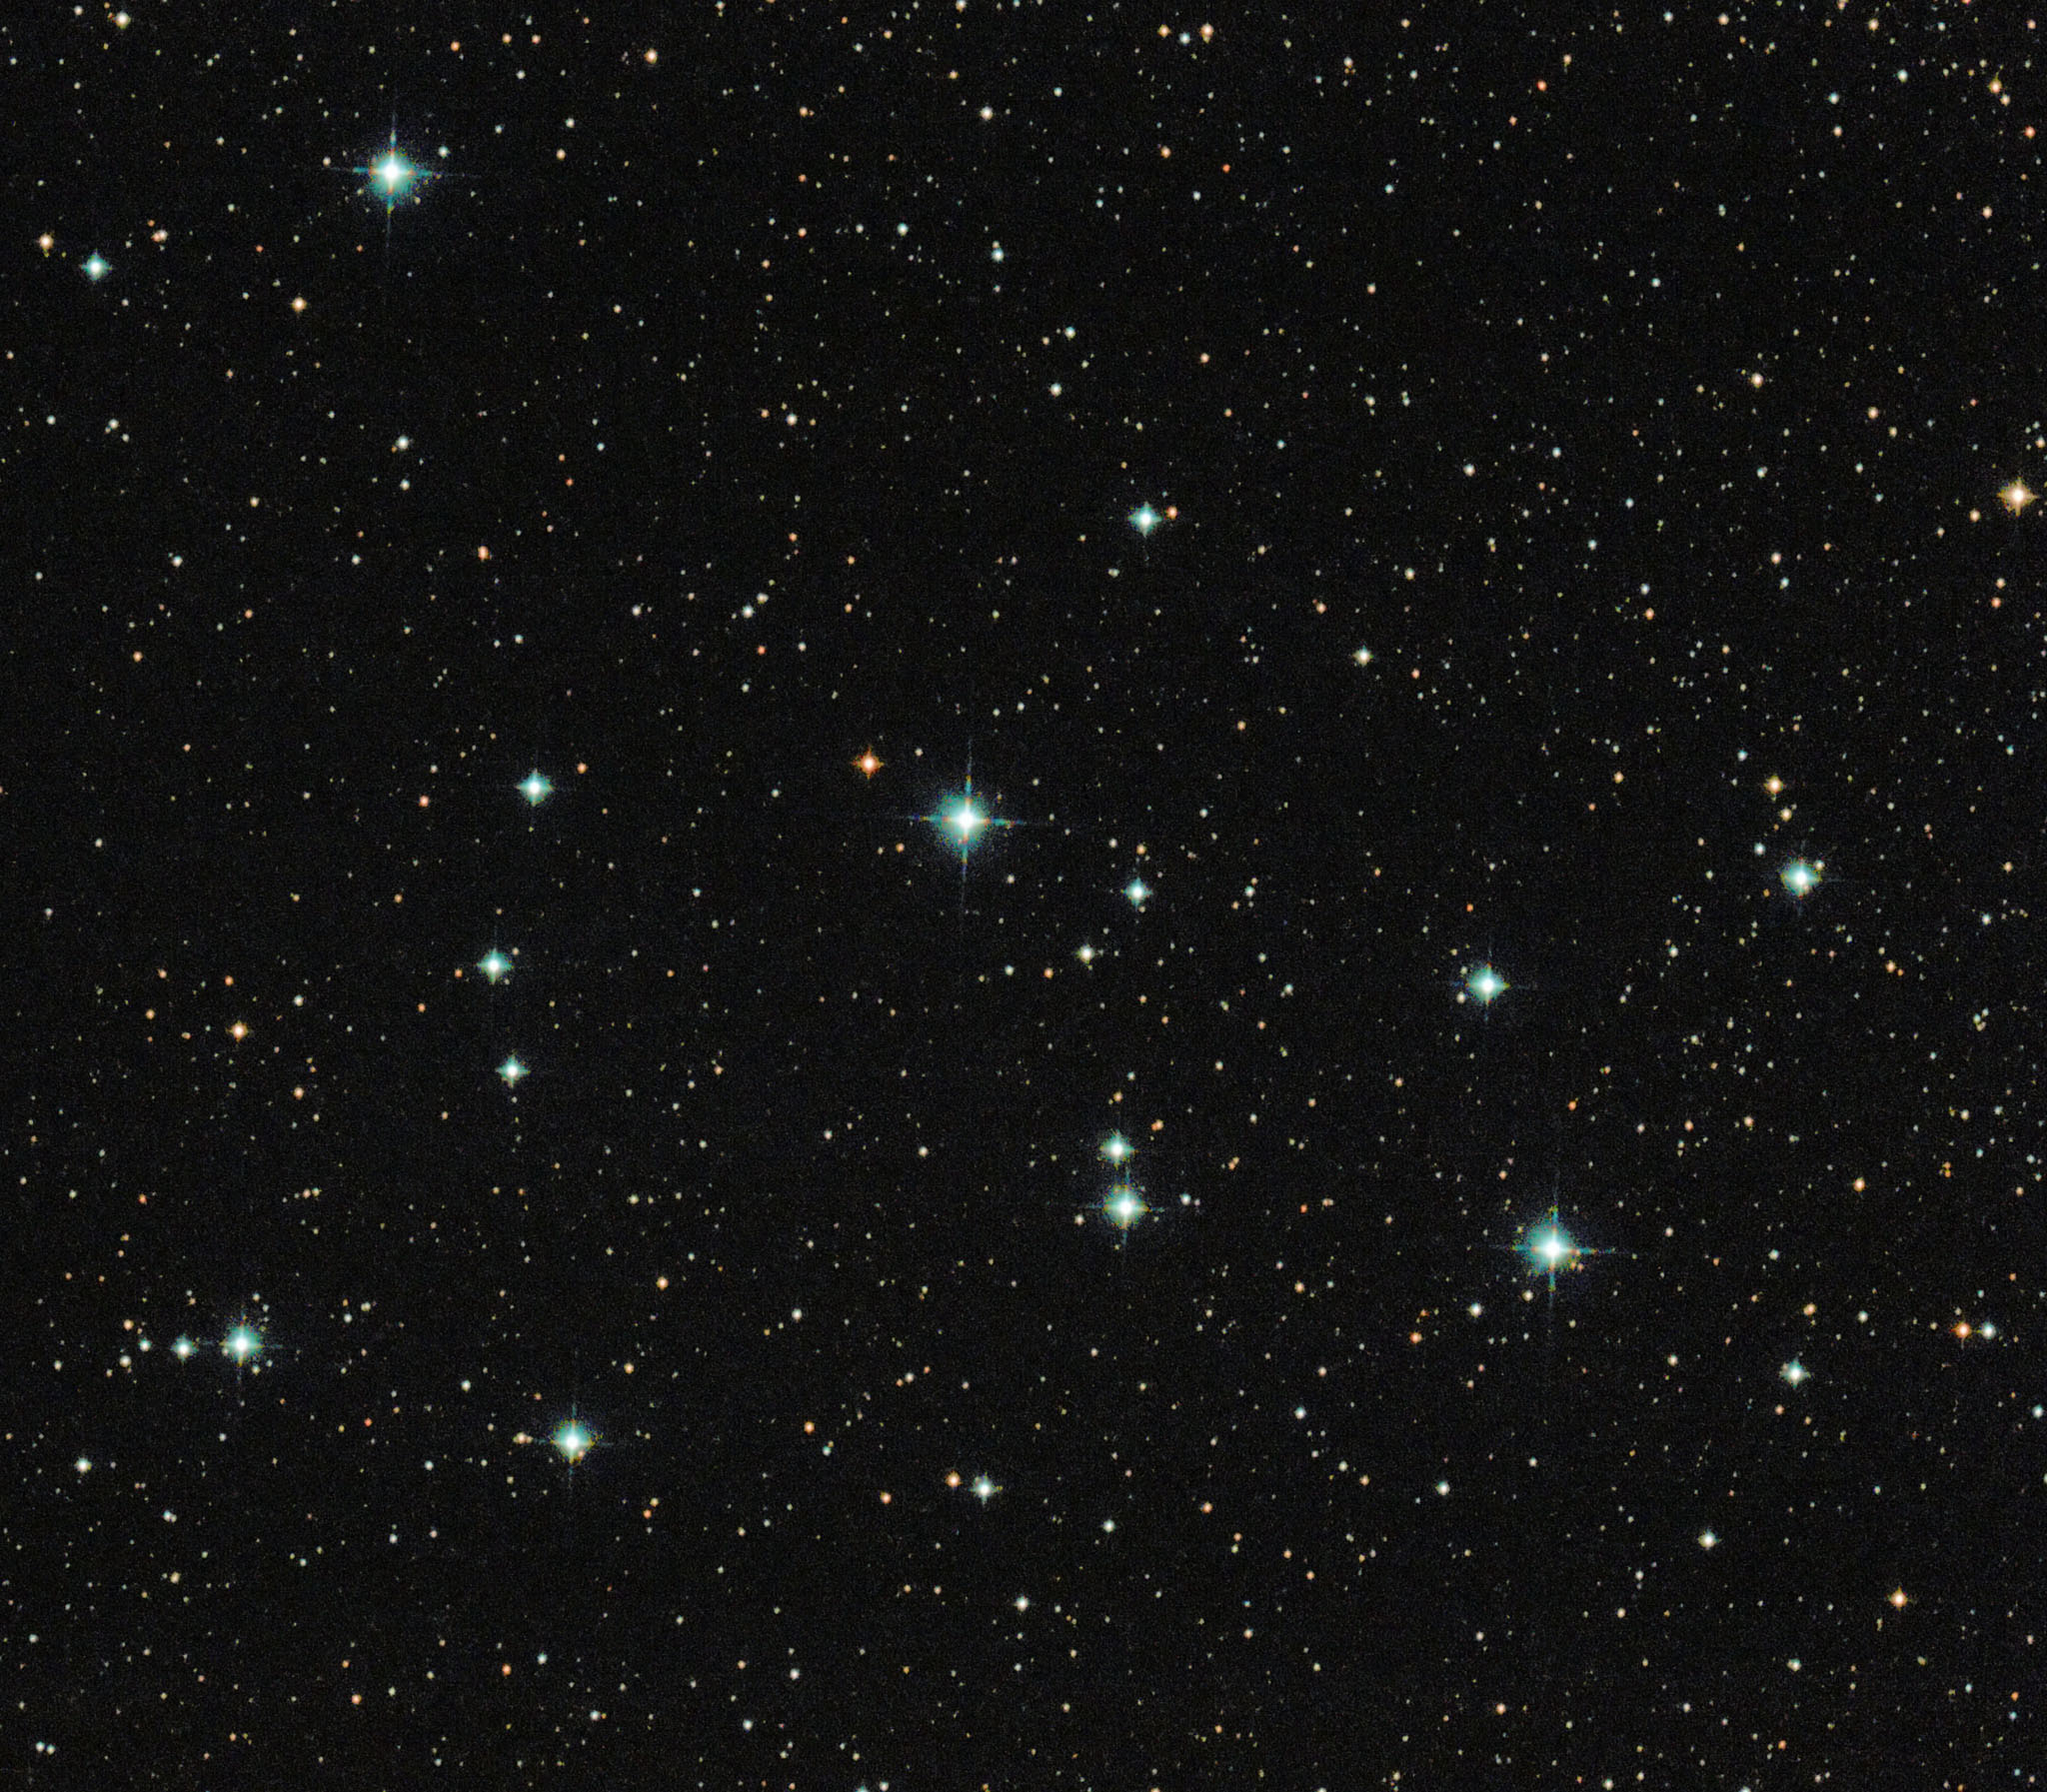 M39 Open Cluste NGC 7092 open cluster in the constellation Cygnus